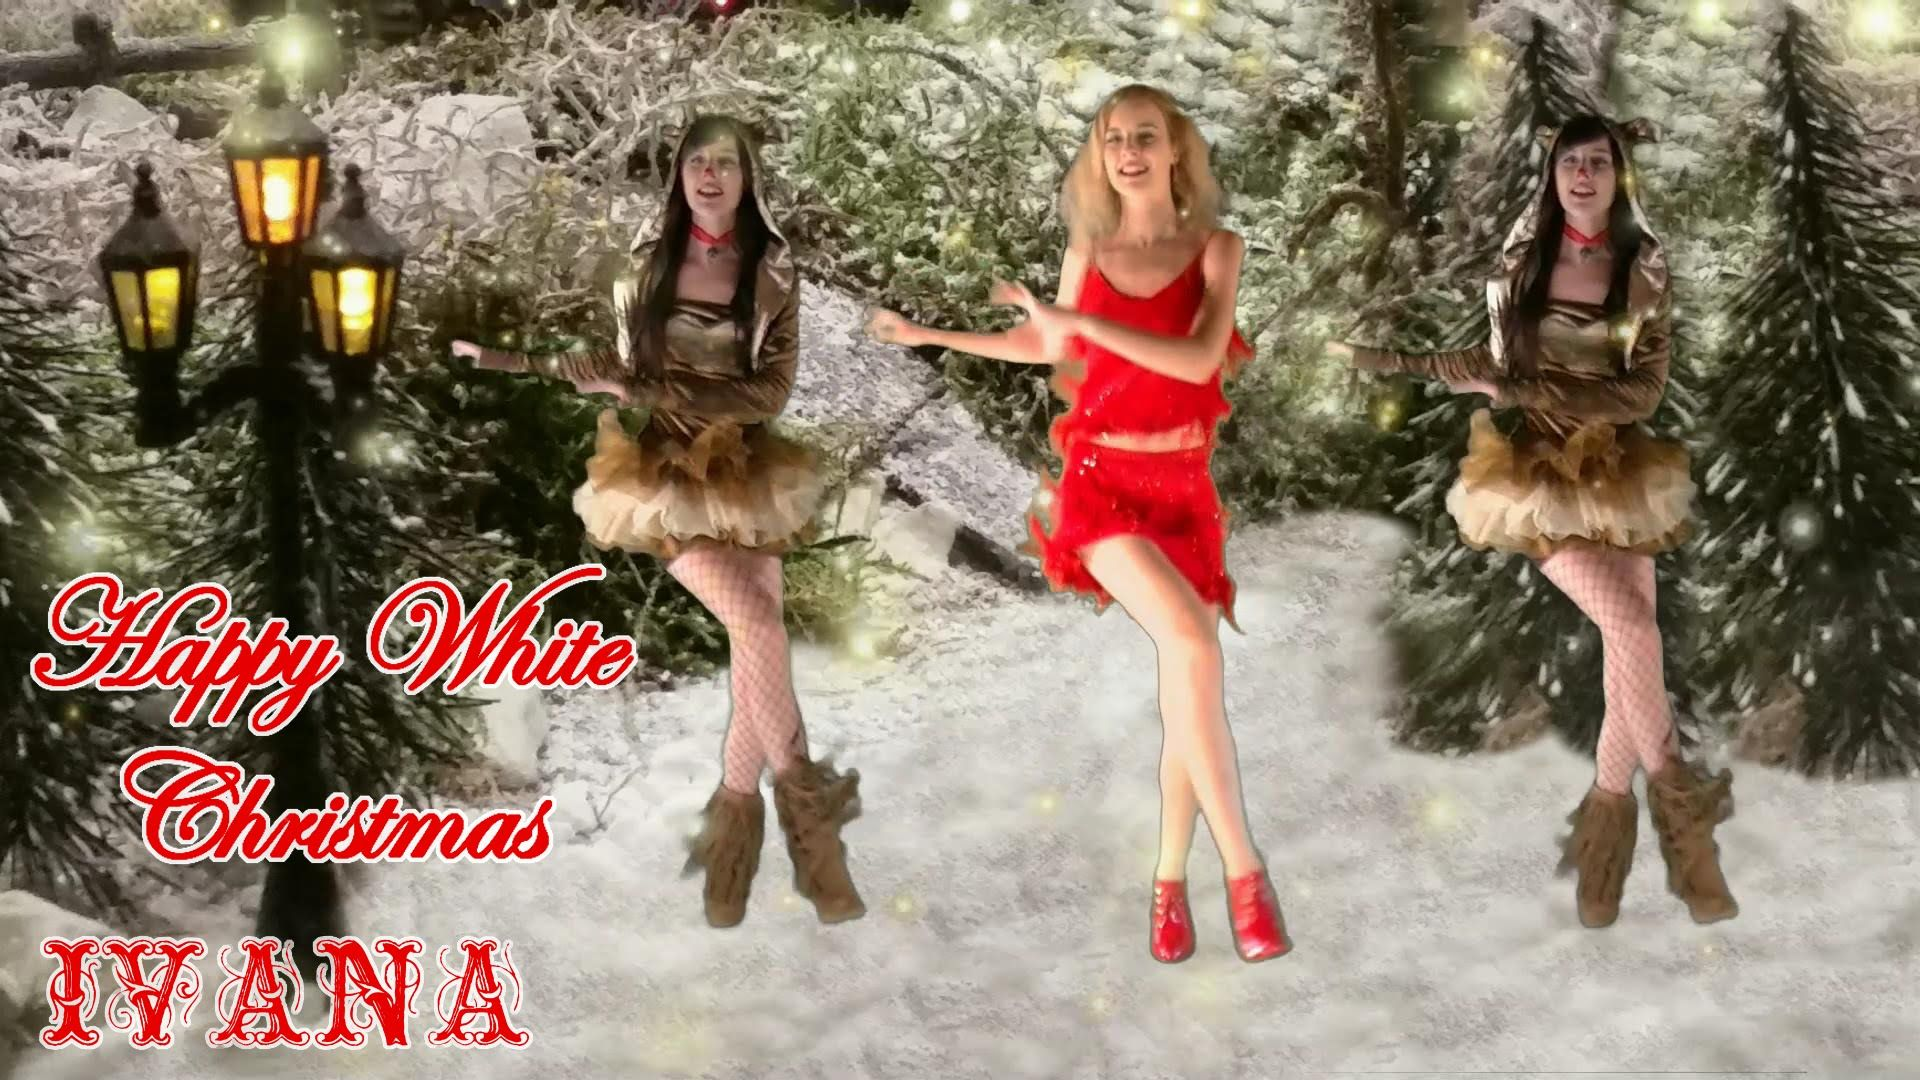 ivana happy white christmas original song official music video chr - Who Wrote The Song White Christmas